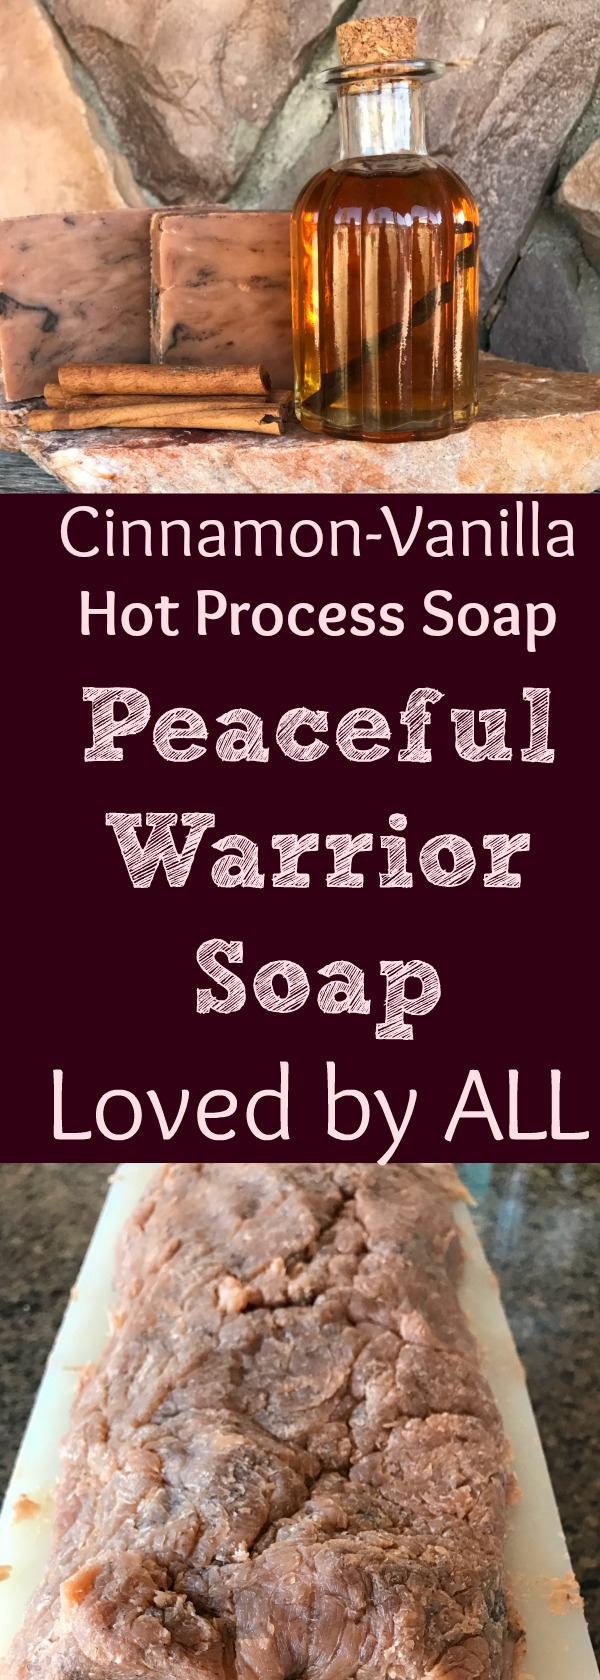 This is seriously one of my best-smelling soaps!  Men love it.  Women love it! It's just loved by everyone! Find out how to make this amazing hot process soap!